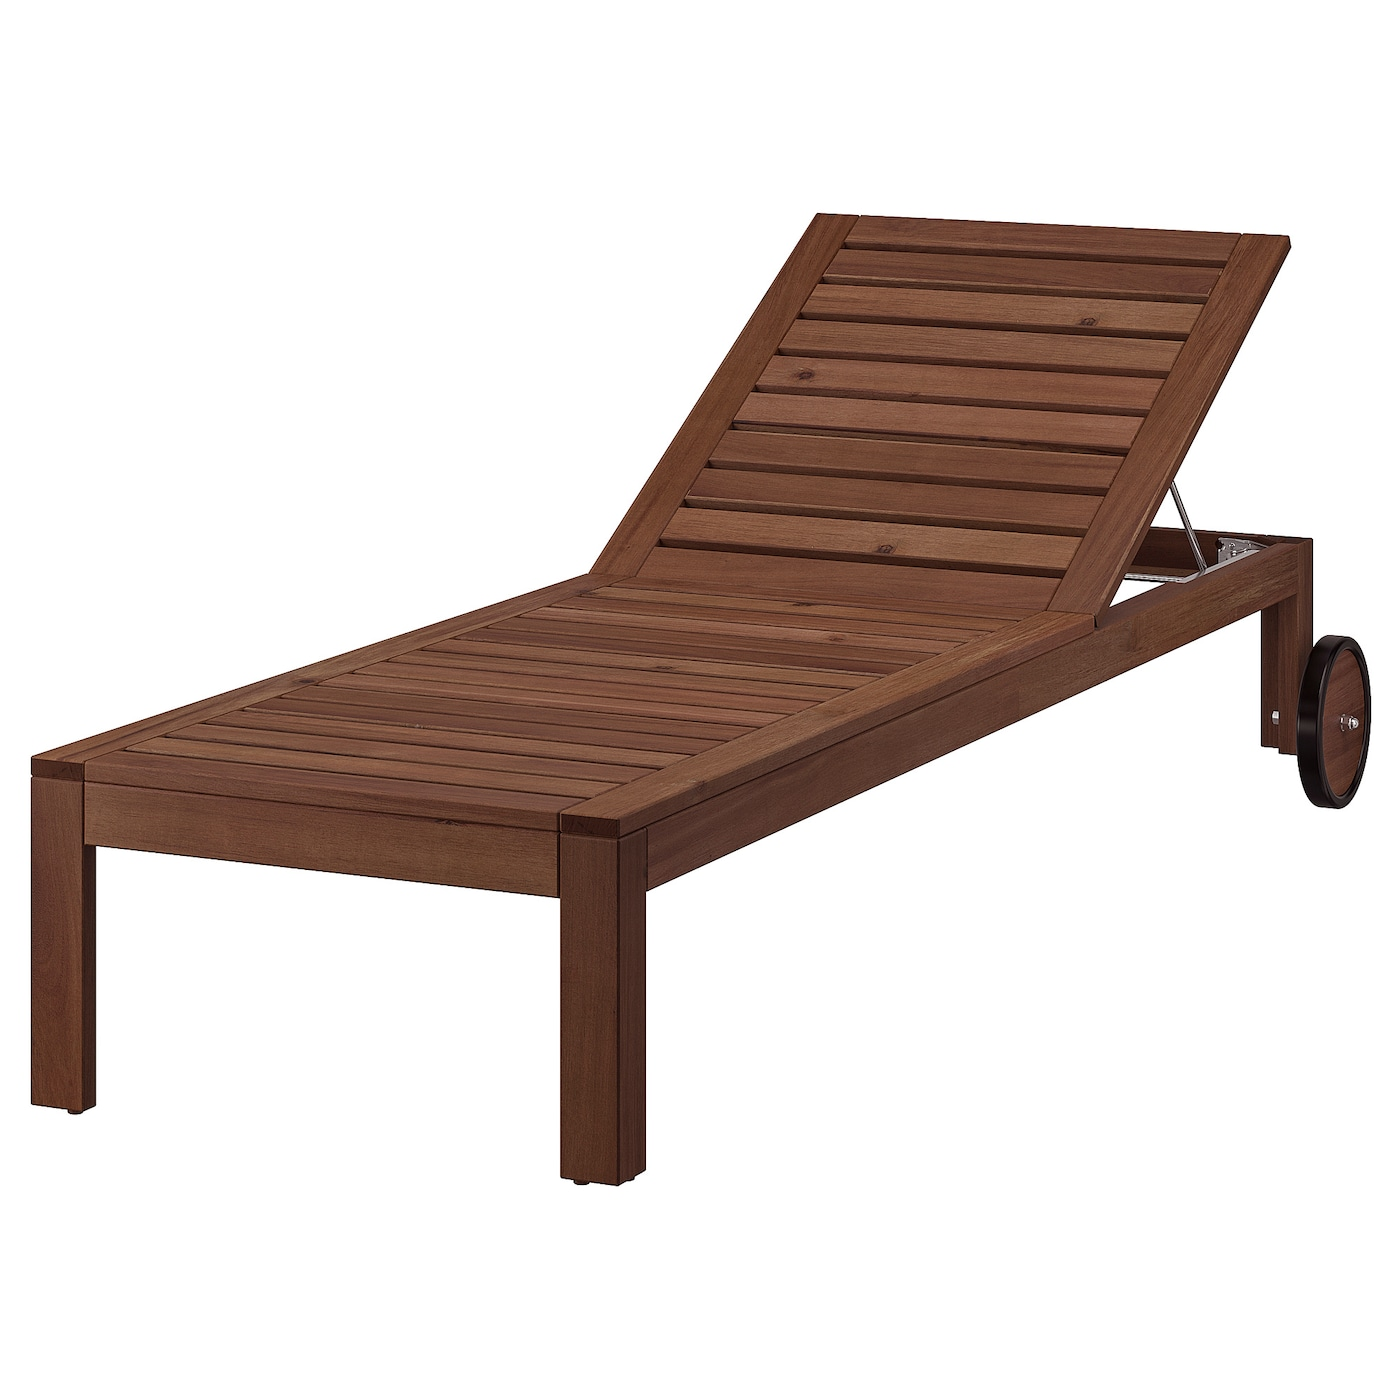 ÄPPLARÖ Sun lounger - brown stained